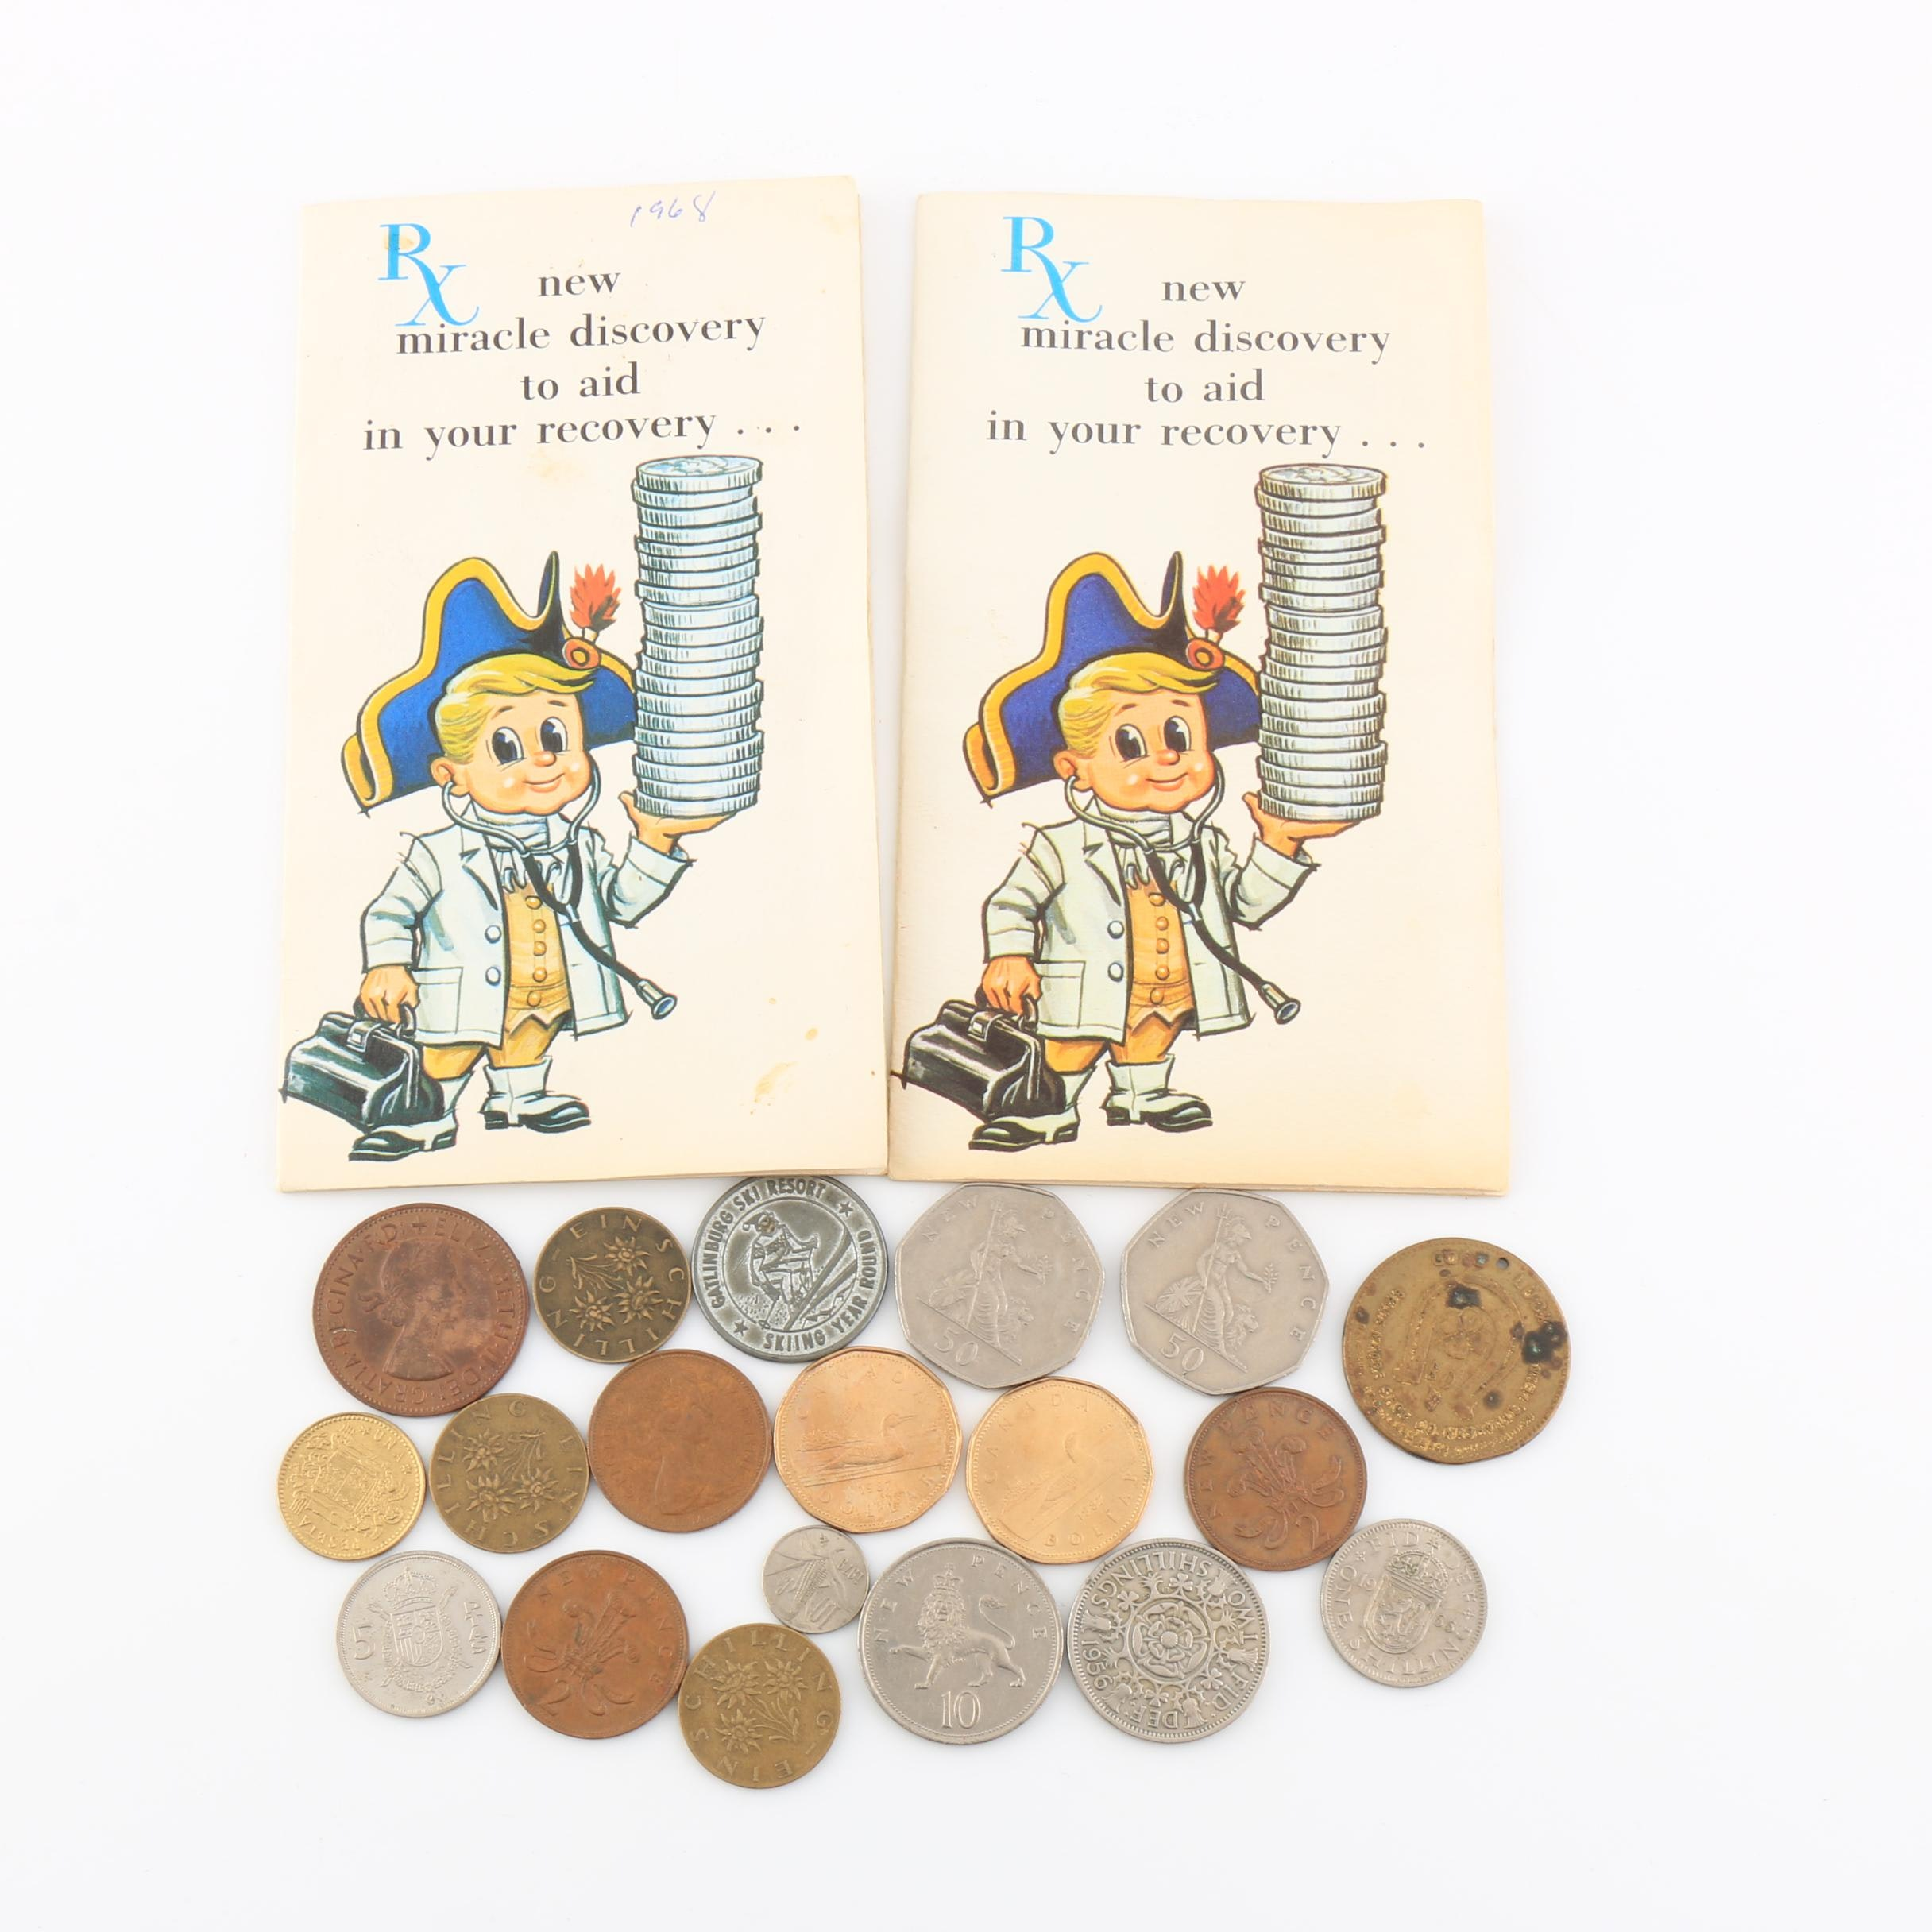 Two Roosevelt Dime Sets and an Assortment of Foreign Coins and Tokens